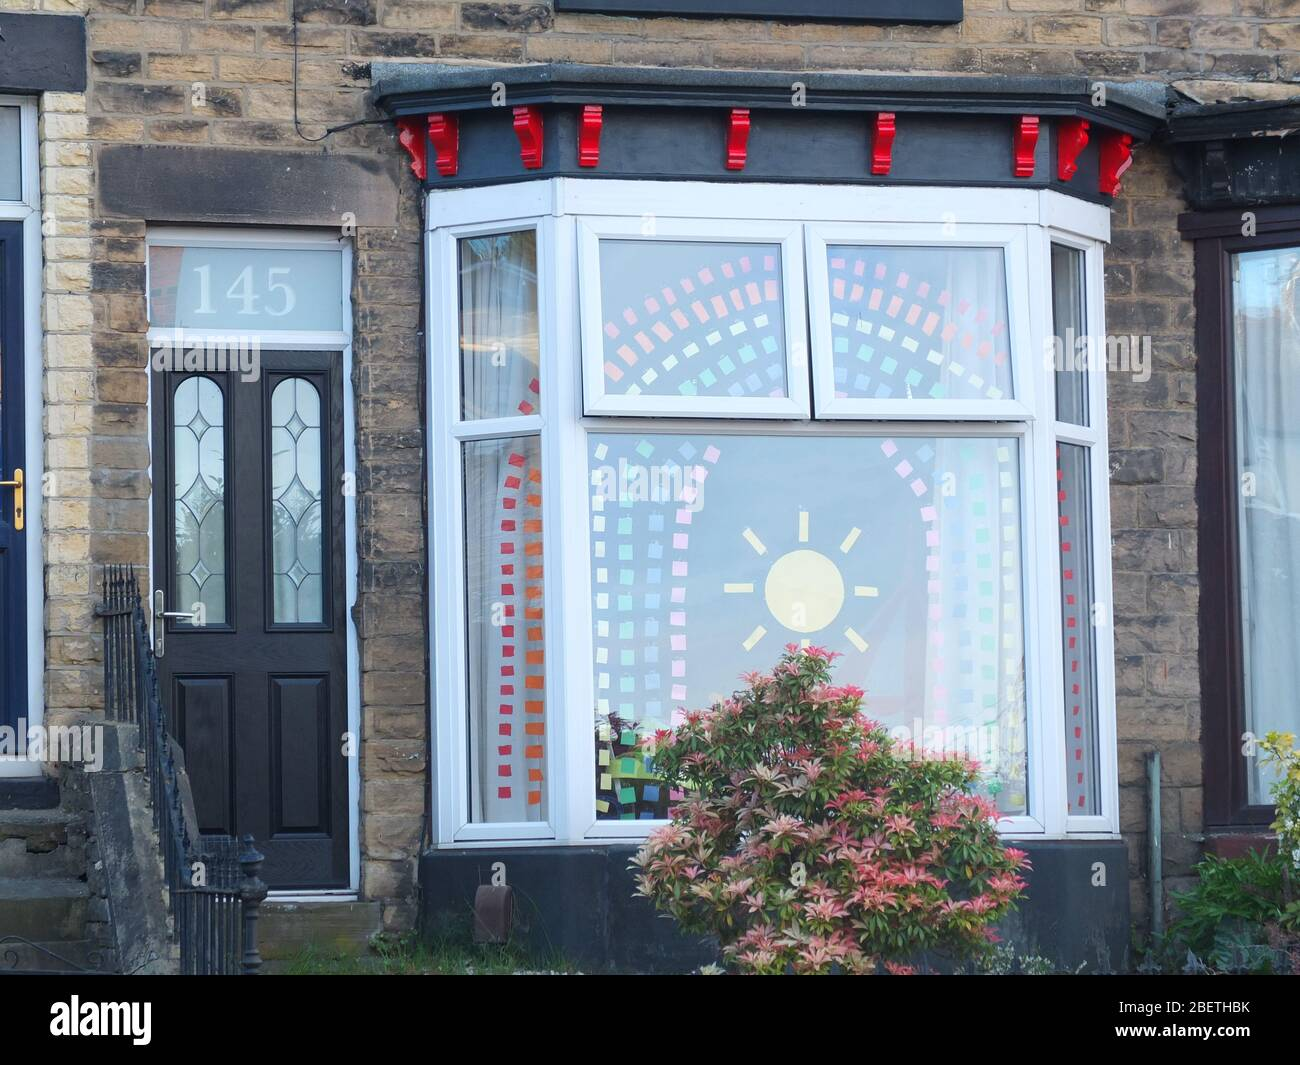 Display of cut coloured paper forming the symbol of a rainbow and sunshine as message of hope during the Coronavirus crisis in bay window of UK house Stock Photo